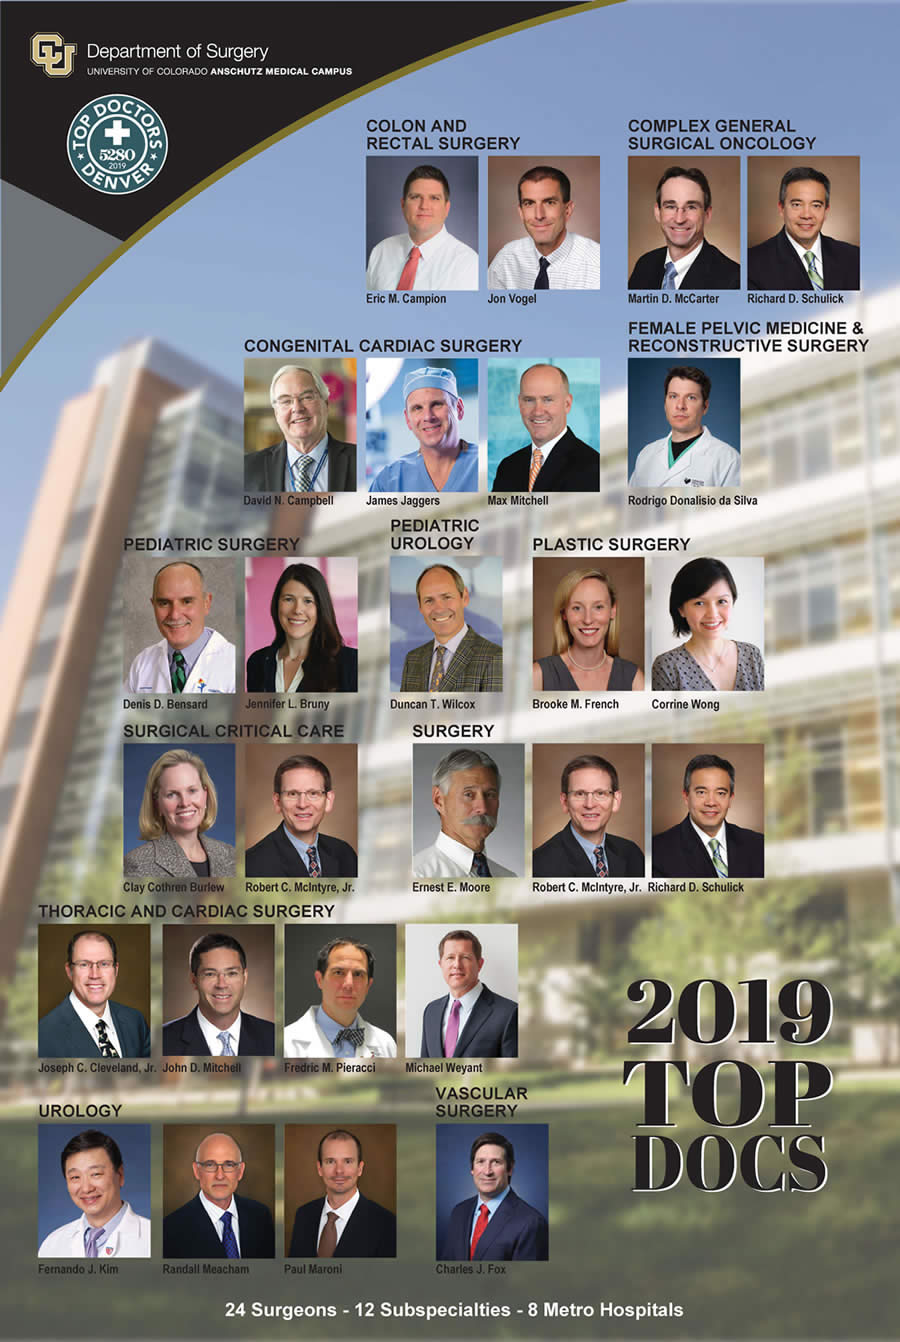 Department of Surgery Top Doctors Poster 2019